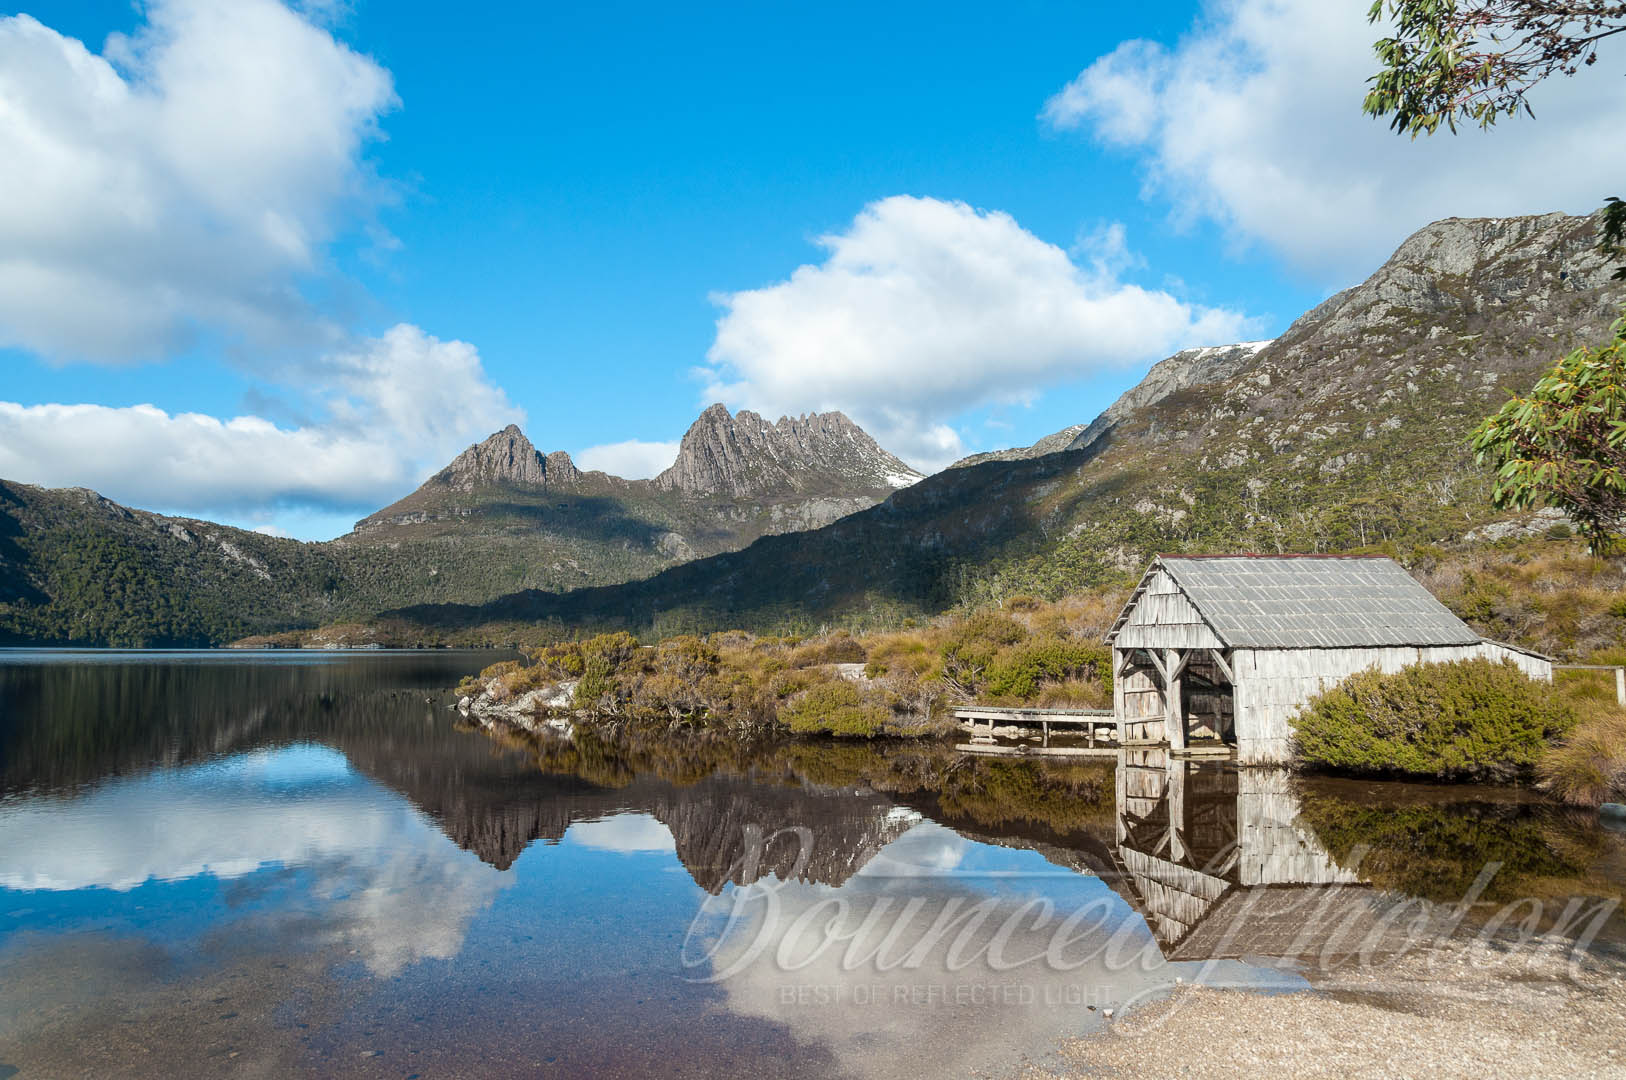 Historic Boatshed at the Dove Lake with Cradle Mountain on the background